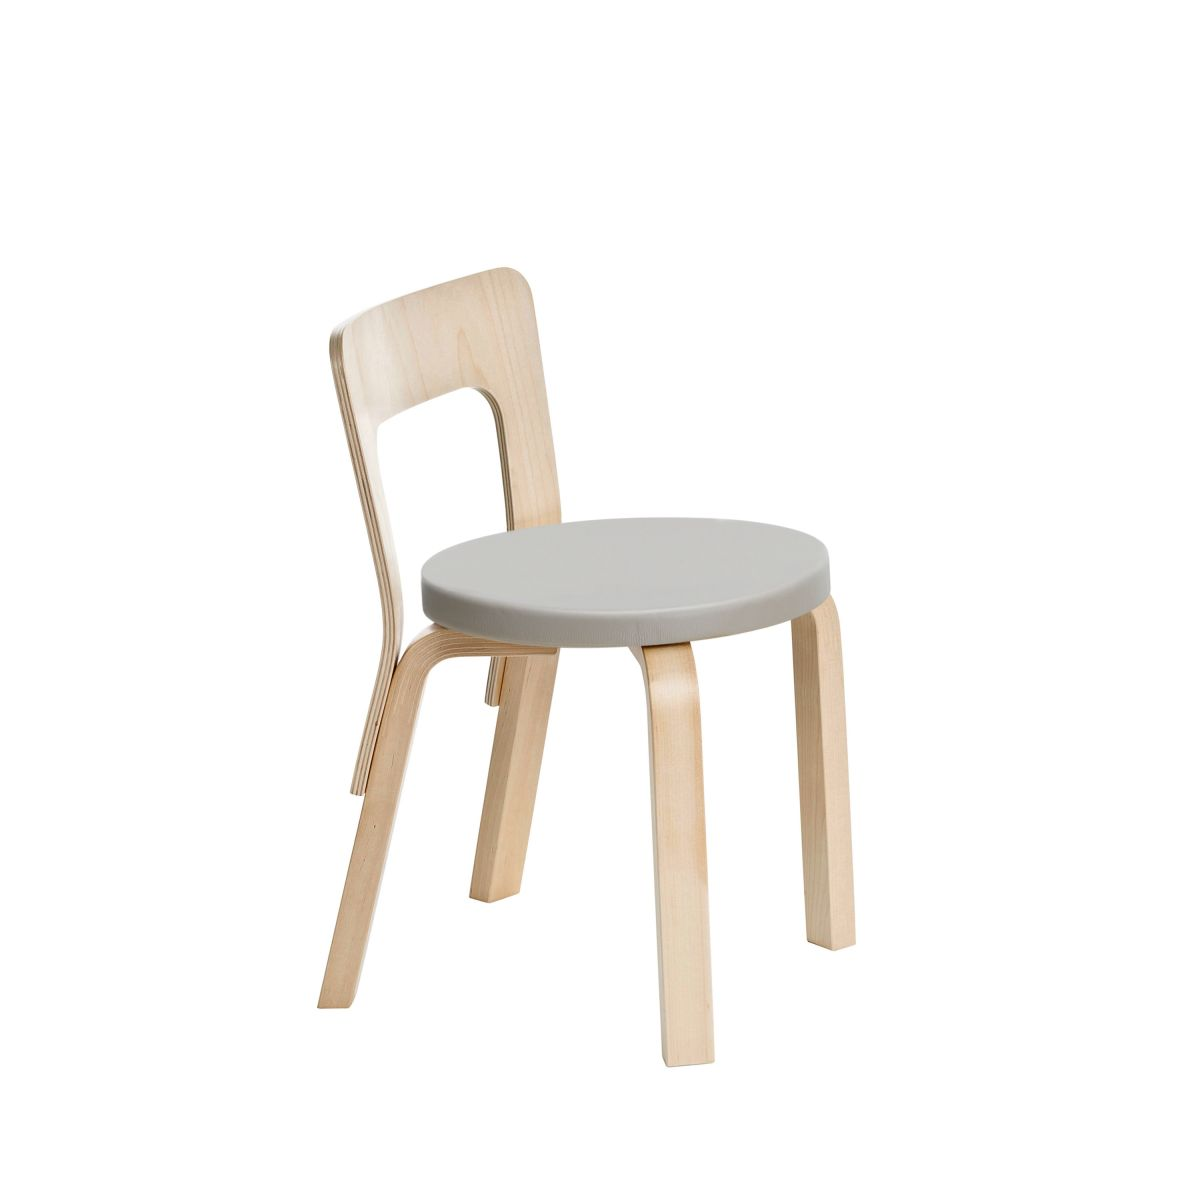 Childrens-Chair-N65-legs-birch_seat-leather-upholstery_F-2912718